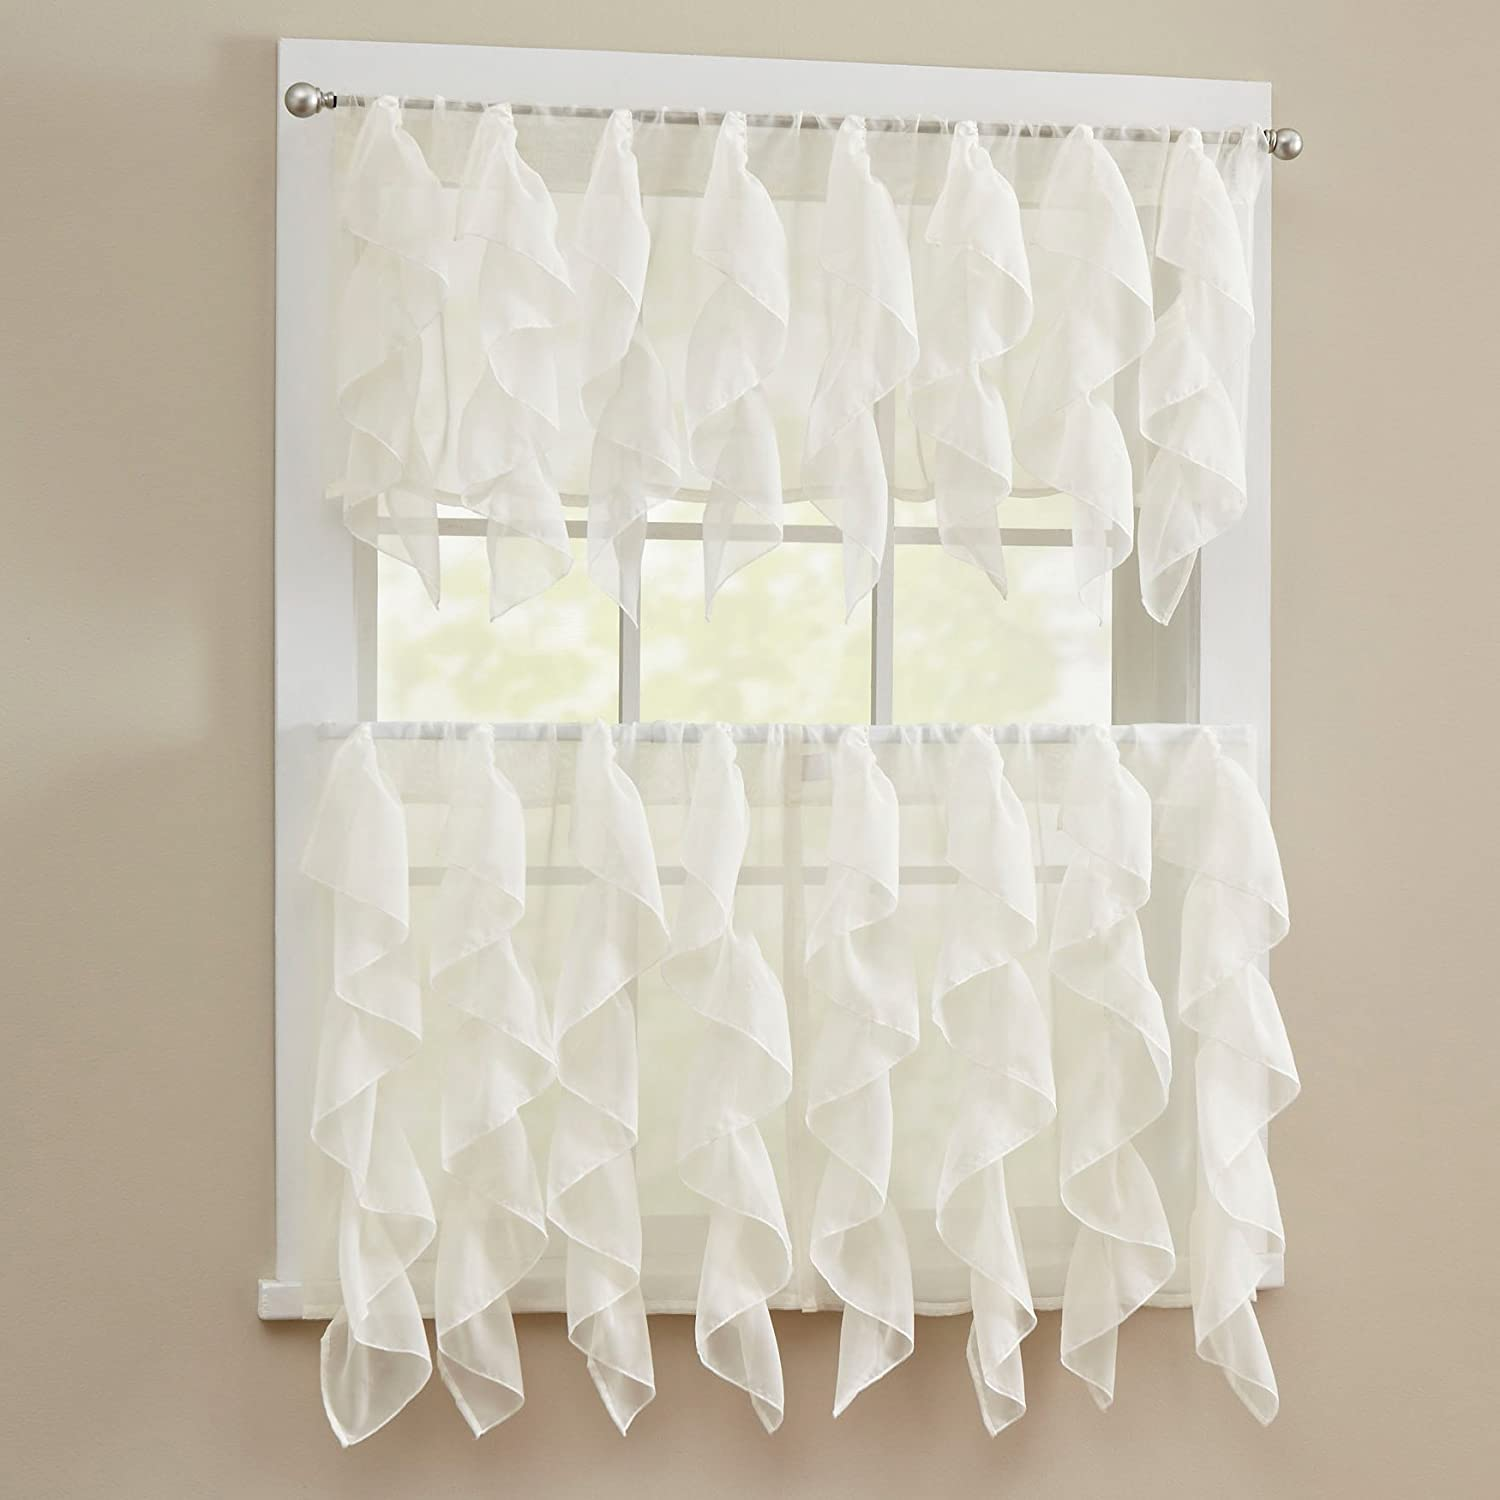 Sweet Home Collection 5 Pc Kitchen Curtain Set, Swag, Valance, Choice of 24 Sheer Ivory, 36  Tier Pair,